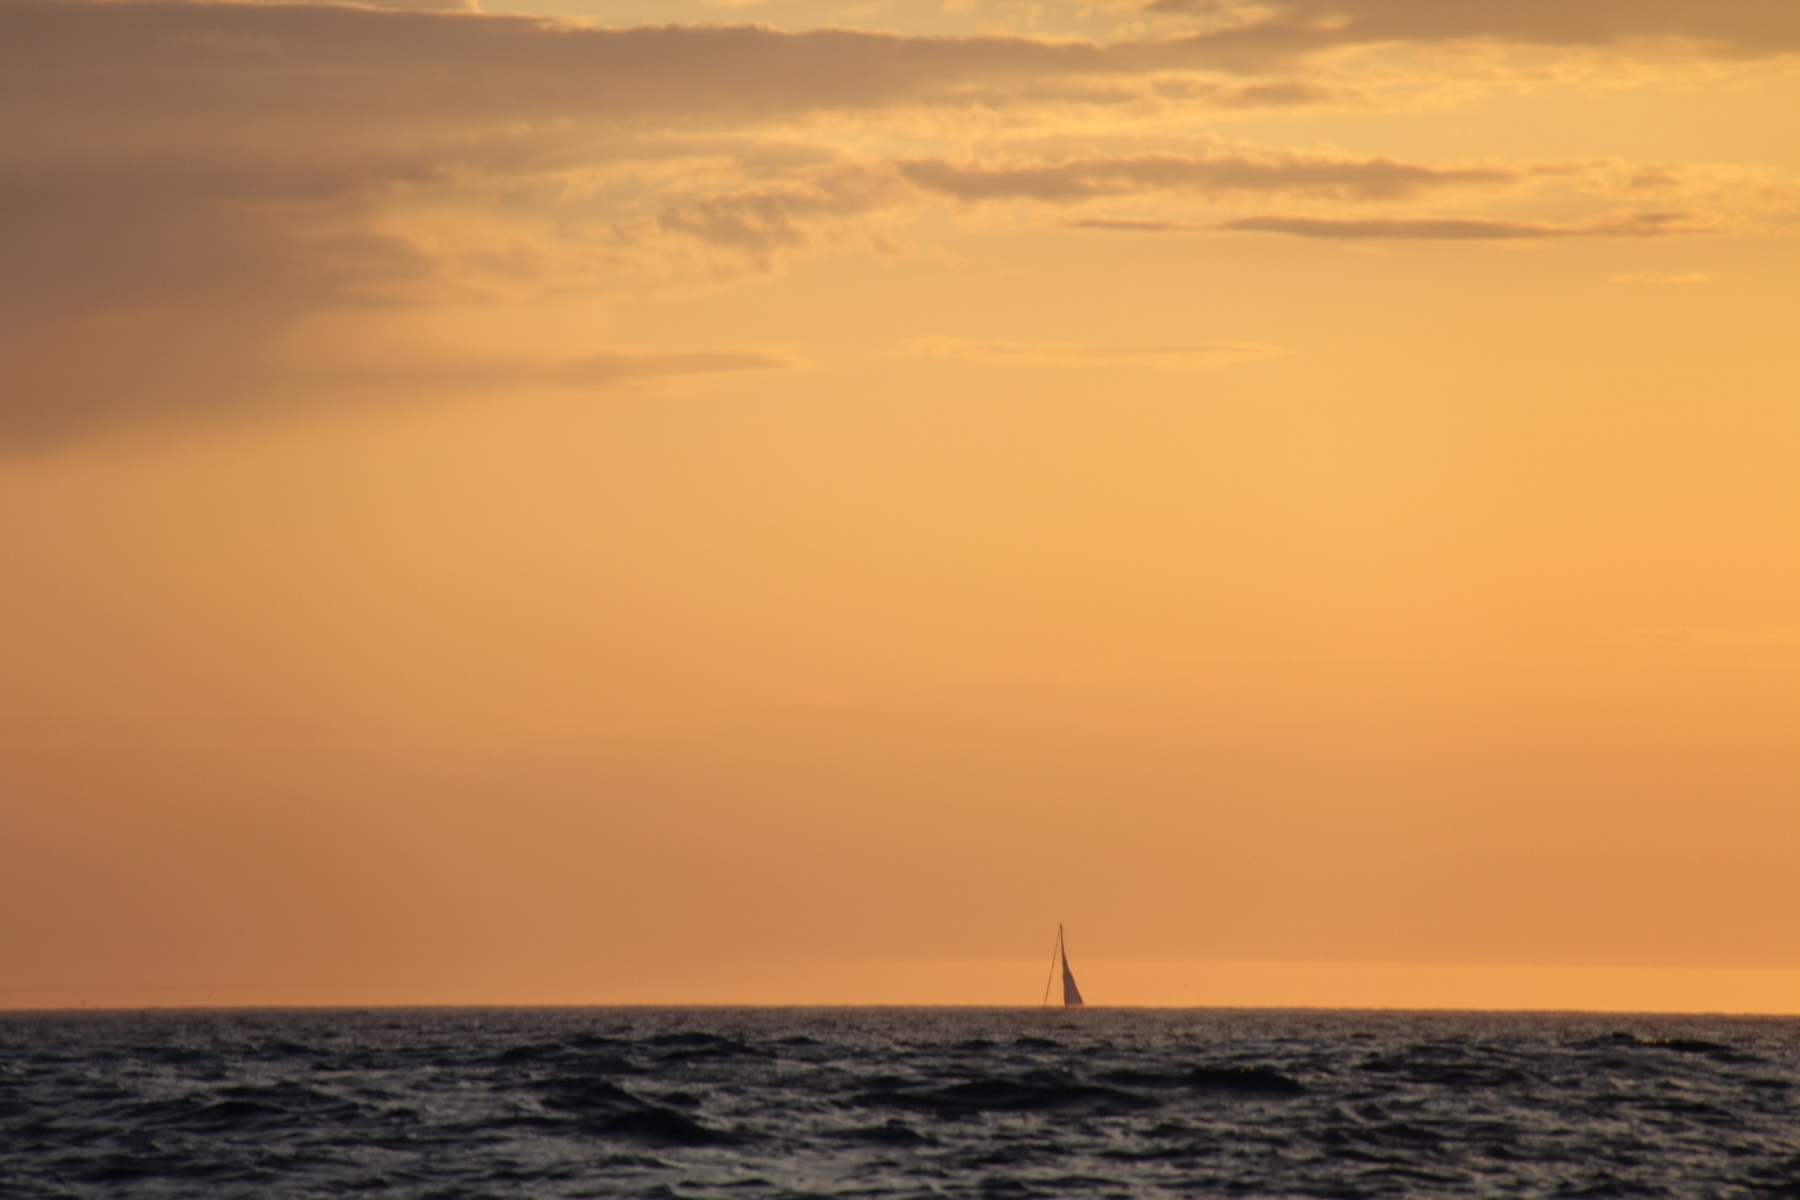 A yacht on the horizon , not long now and Roam will have a mast...